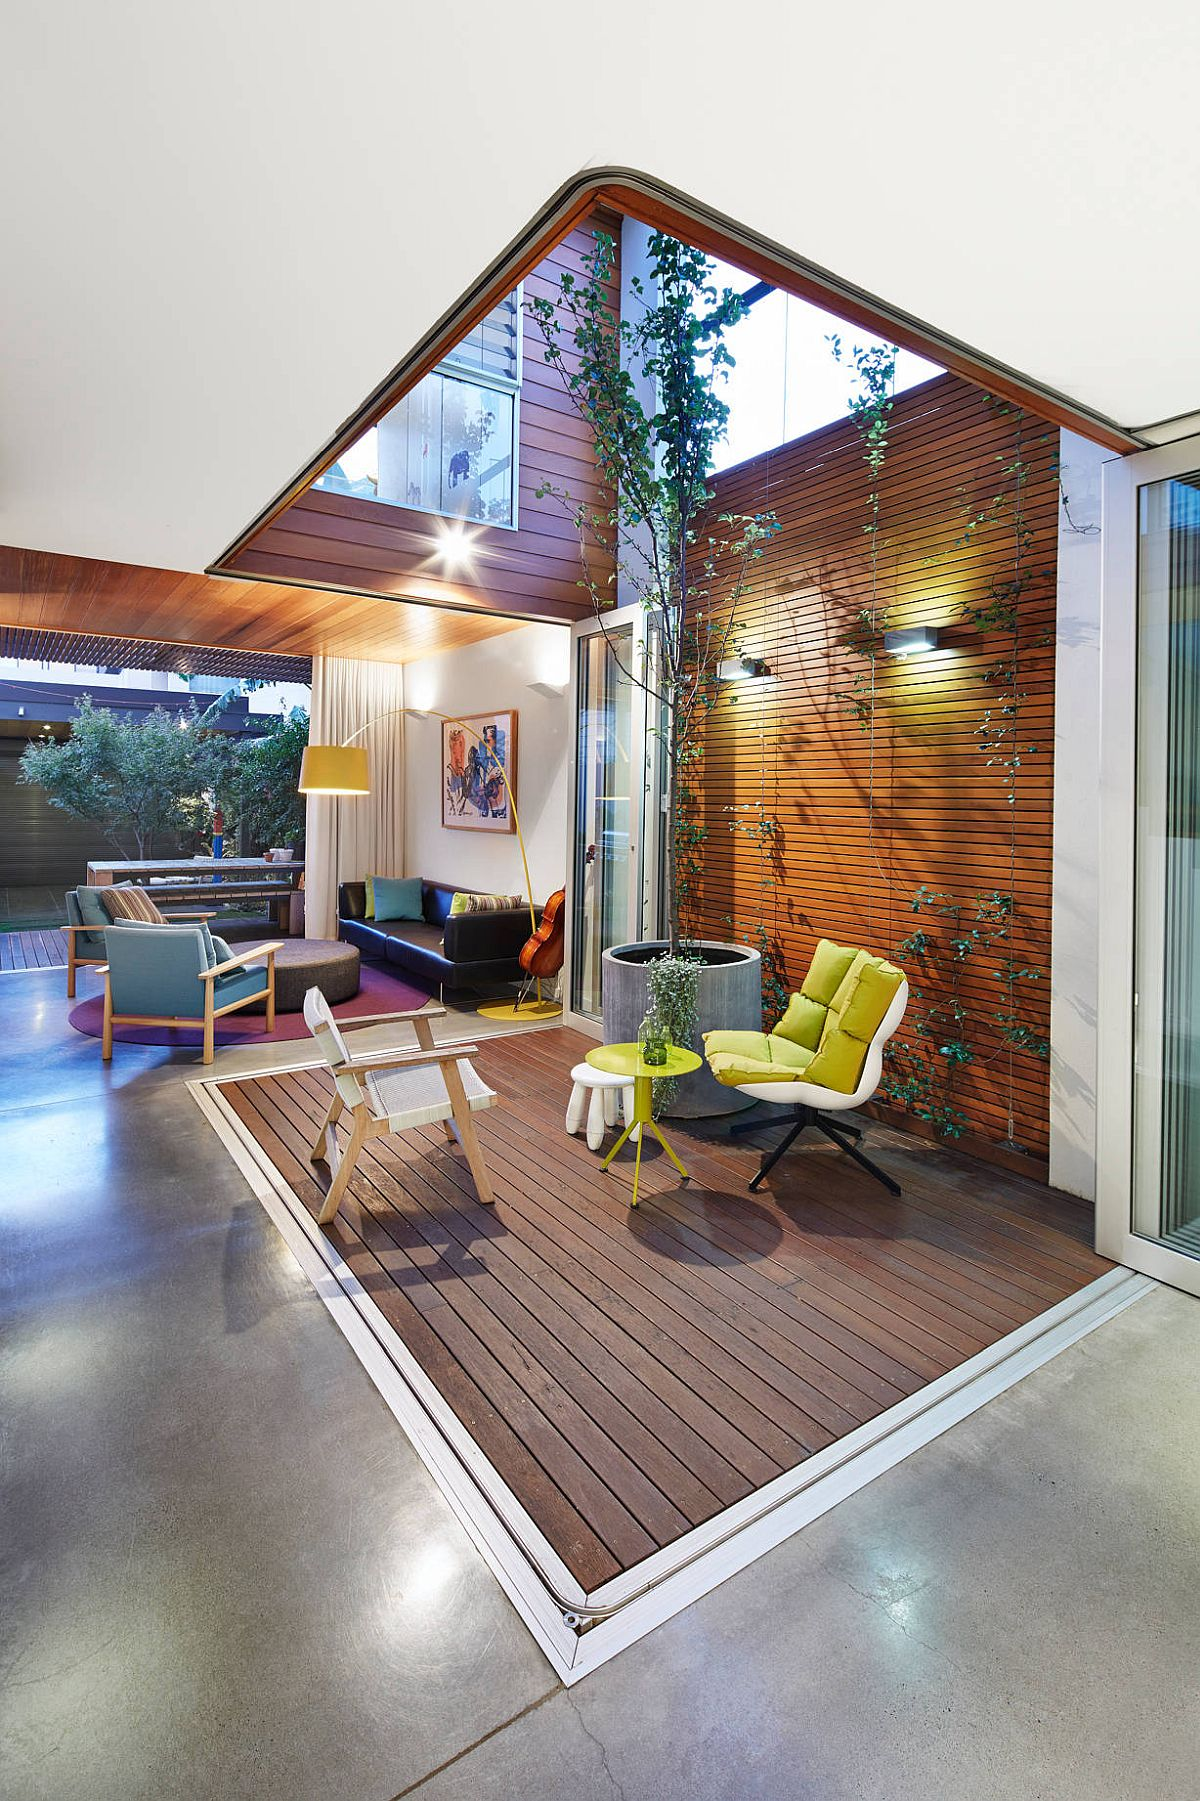 Tiny wooden deck in this Aussie home feels like part of the interior